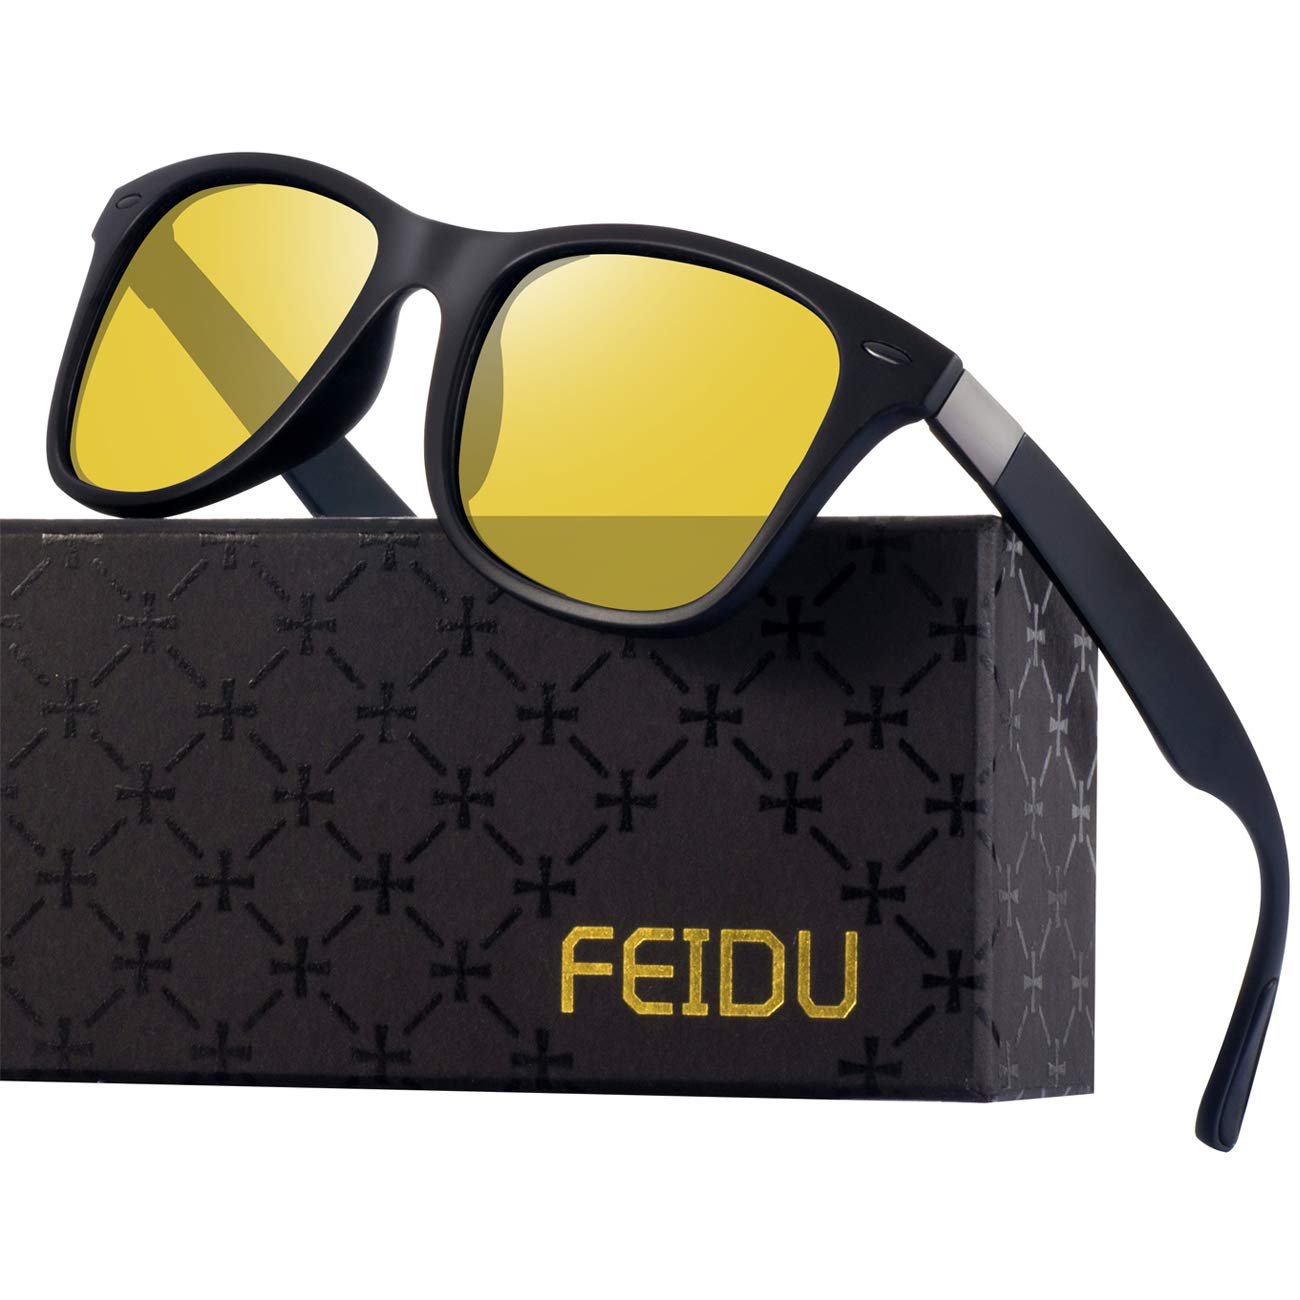 Polarized Sunglasses for Men Retro - FEIDU Polarized Sunglasses for Men Sunglasses Man FD2150 (yellow) by FEIDU